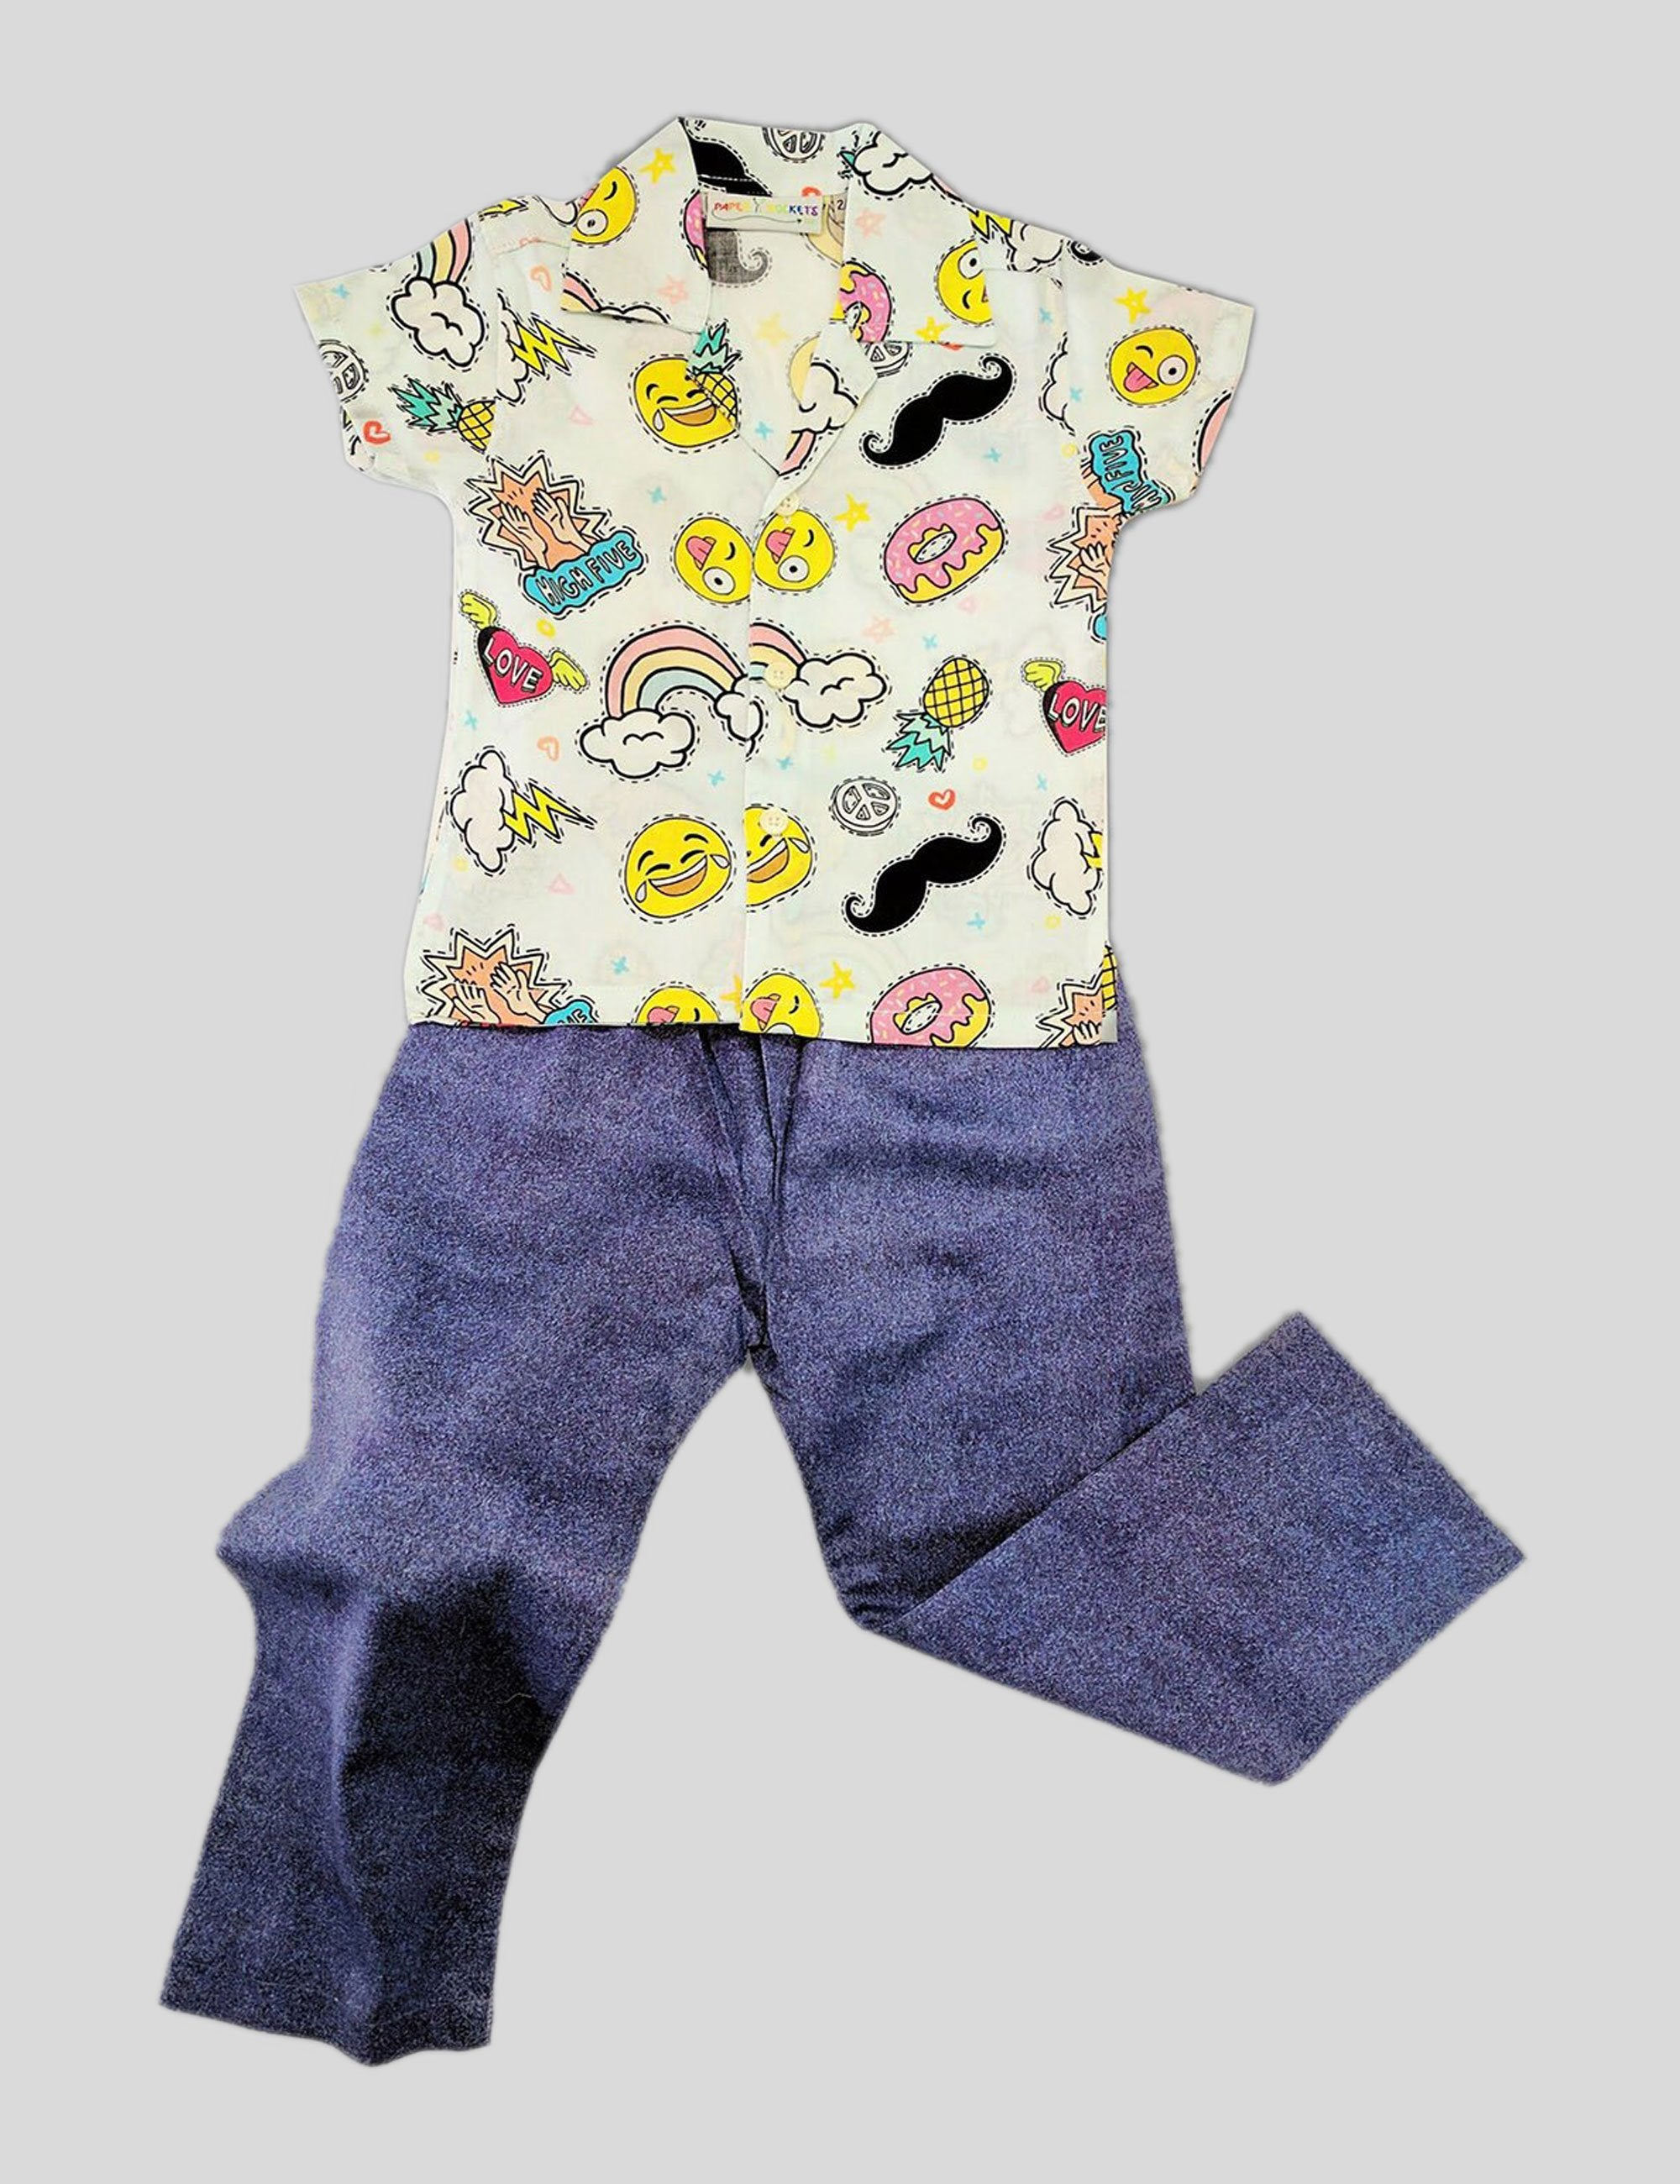 Smiley Faces , Pineapple and Rainbows Print Cotton Nightwear in Multi-Colour for Boys (Half Sleeves)